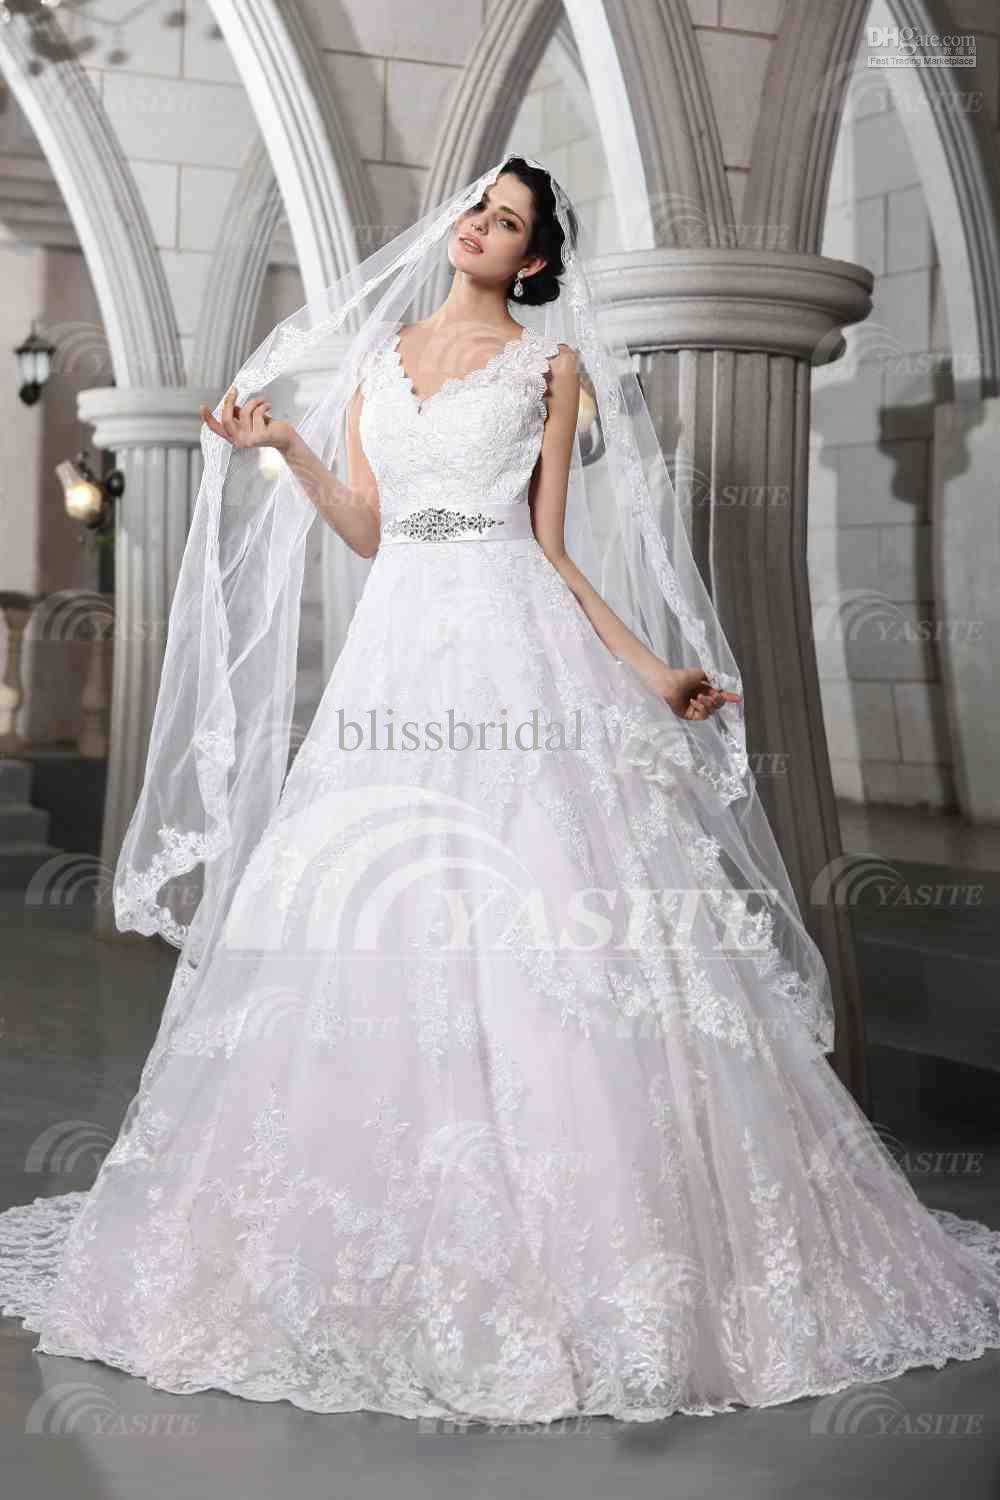 Luxurious V Neck Wedding Dresses Lace Chapel Train With A Veil Brooch Ball Gown Wedding Dress Ball Gown Wedding Dress Ball Gown Organza Online